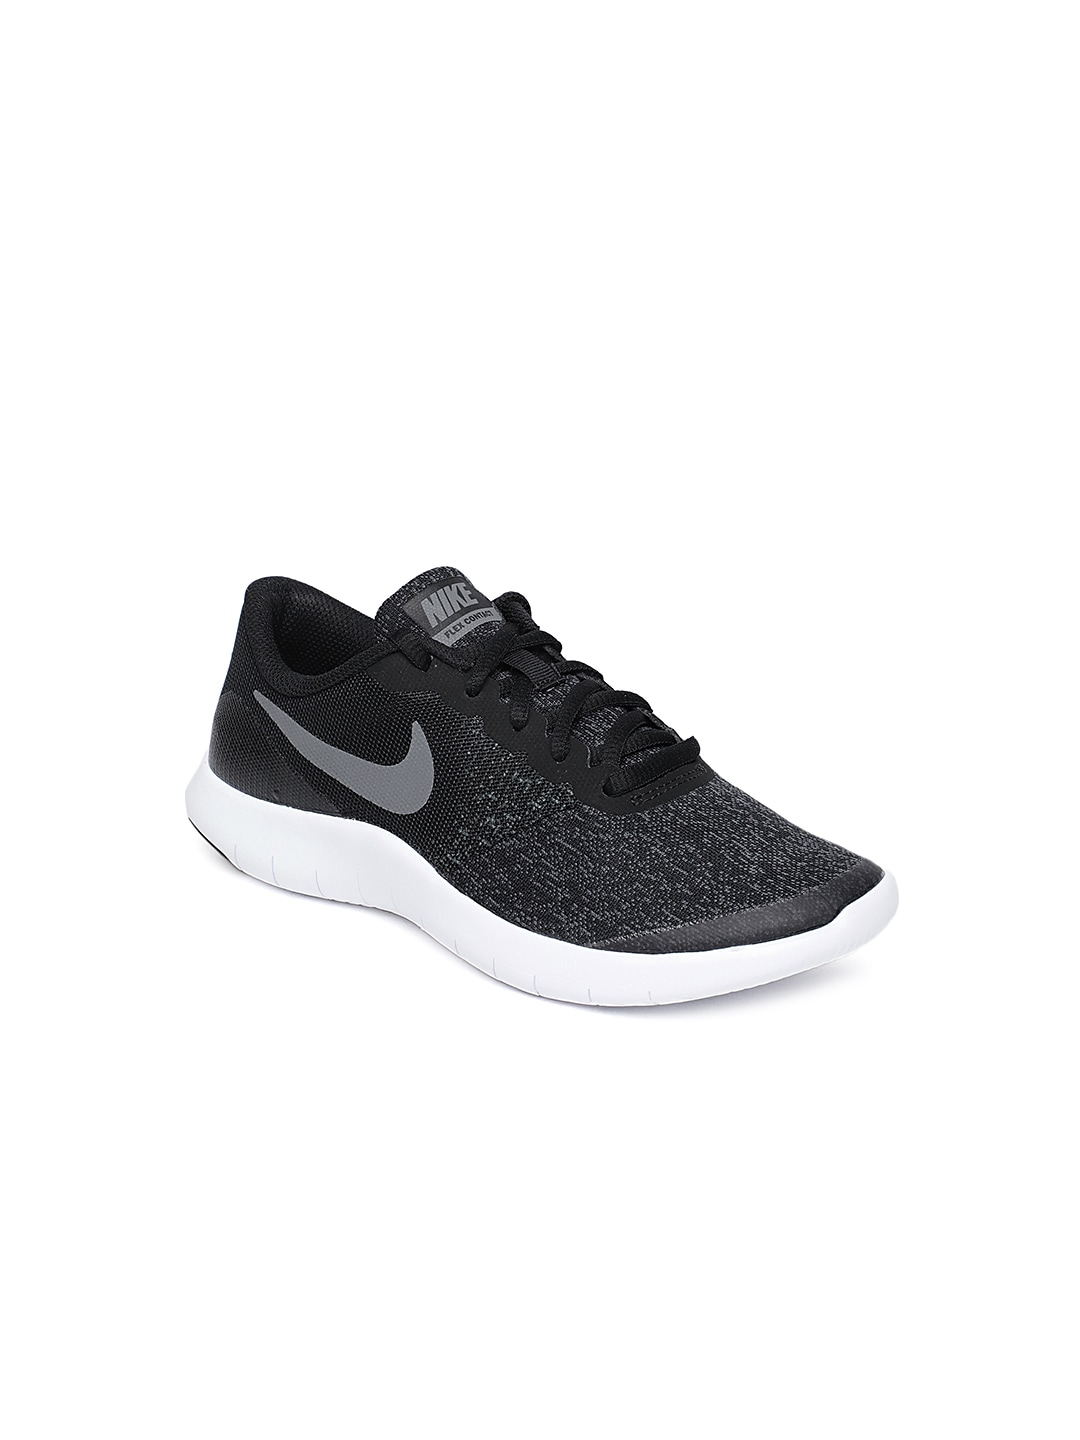 fb37f2261066 Nike Running Shoes - Buy Nike Running Shoes Online